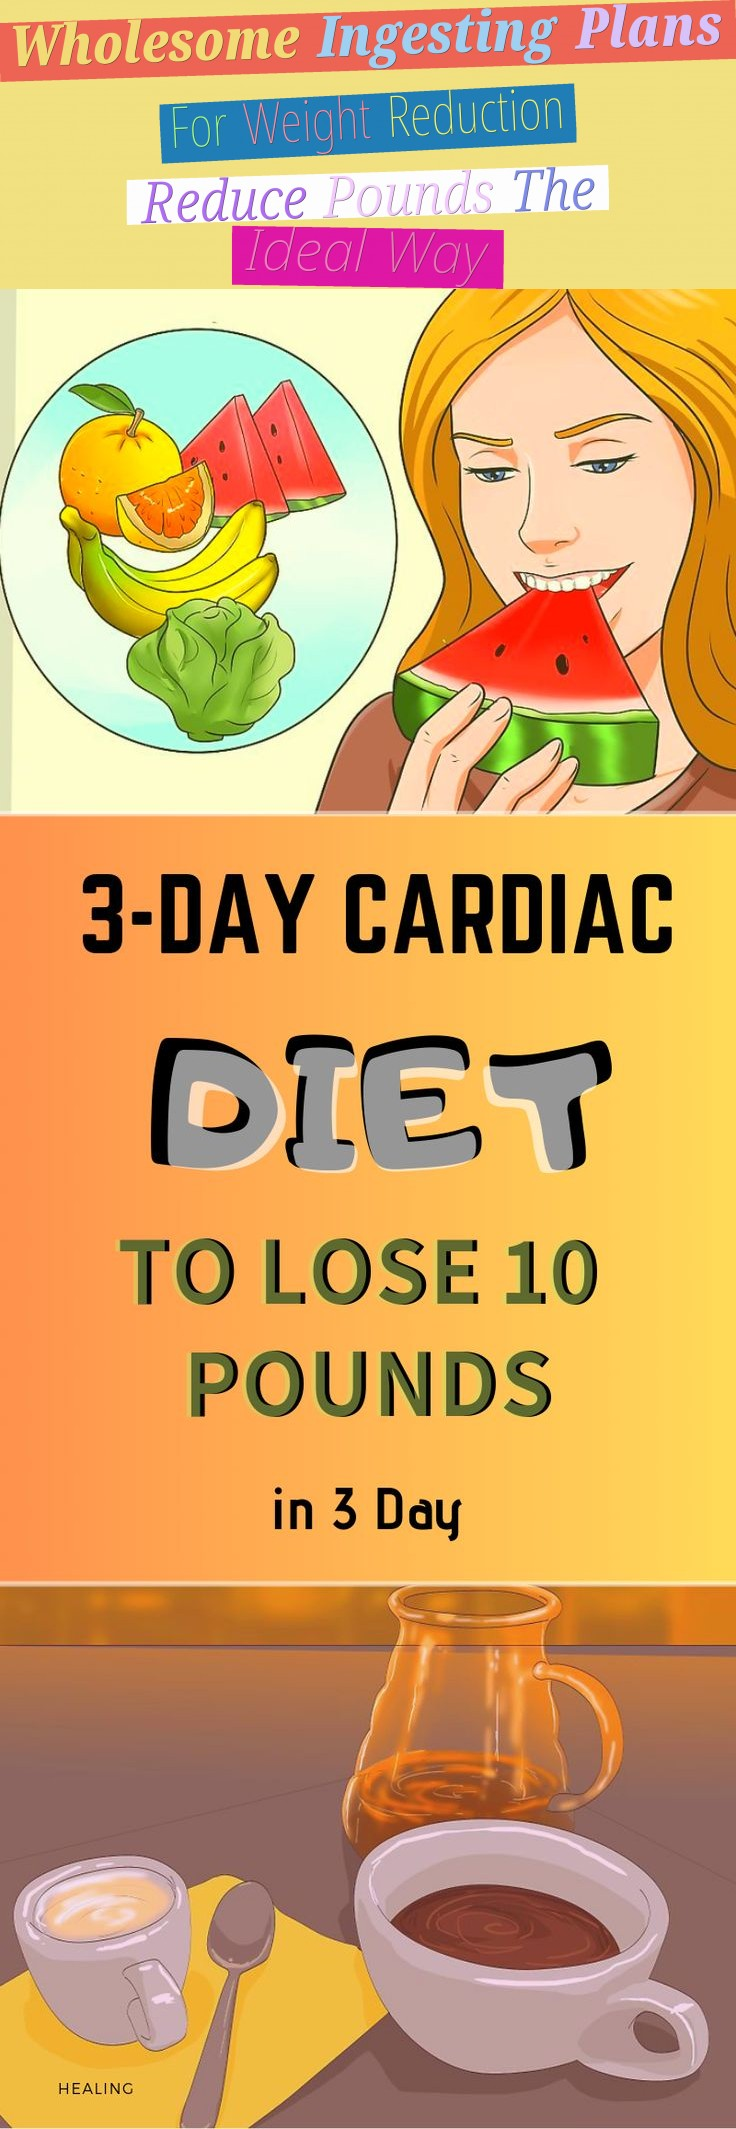 Wholesome Ingesting Plans For Weight Reduction - Reduce Pounds The Ideal Way